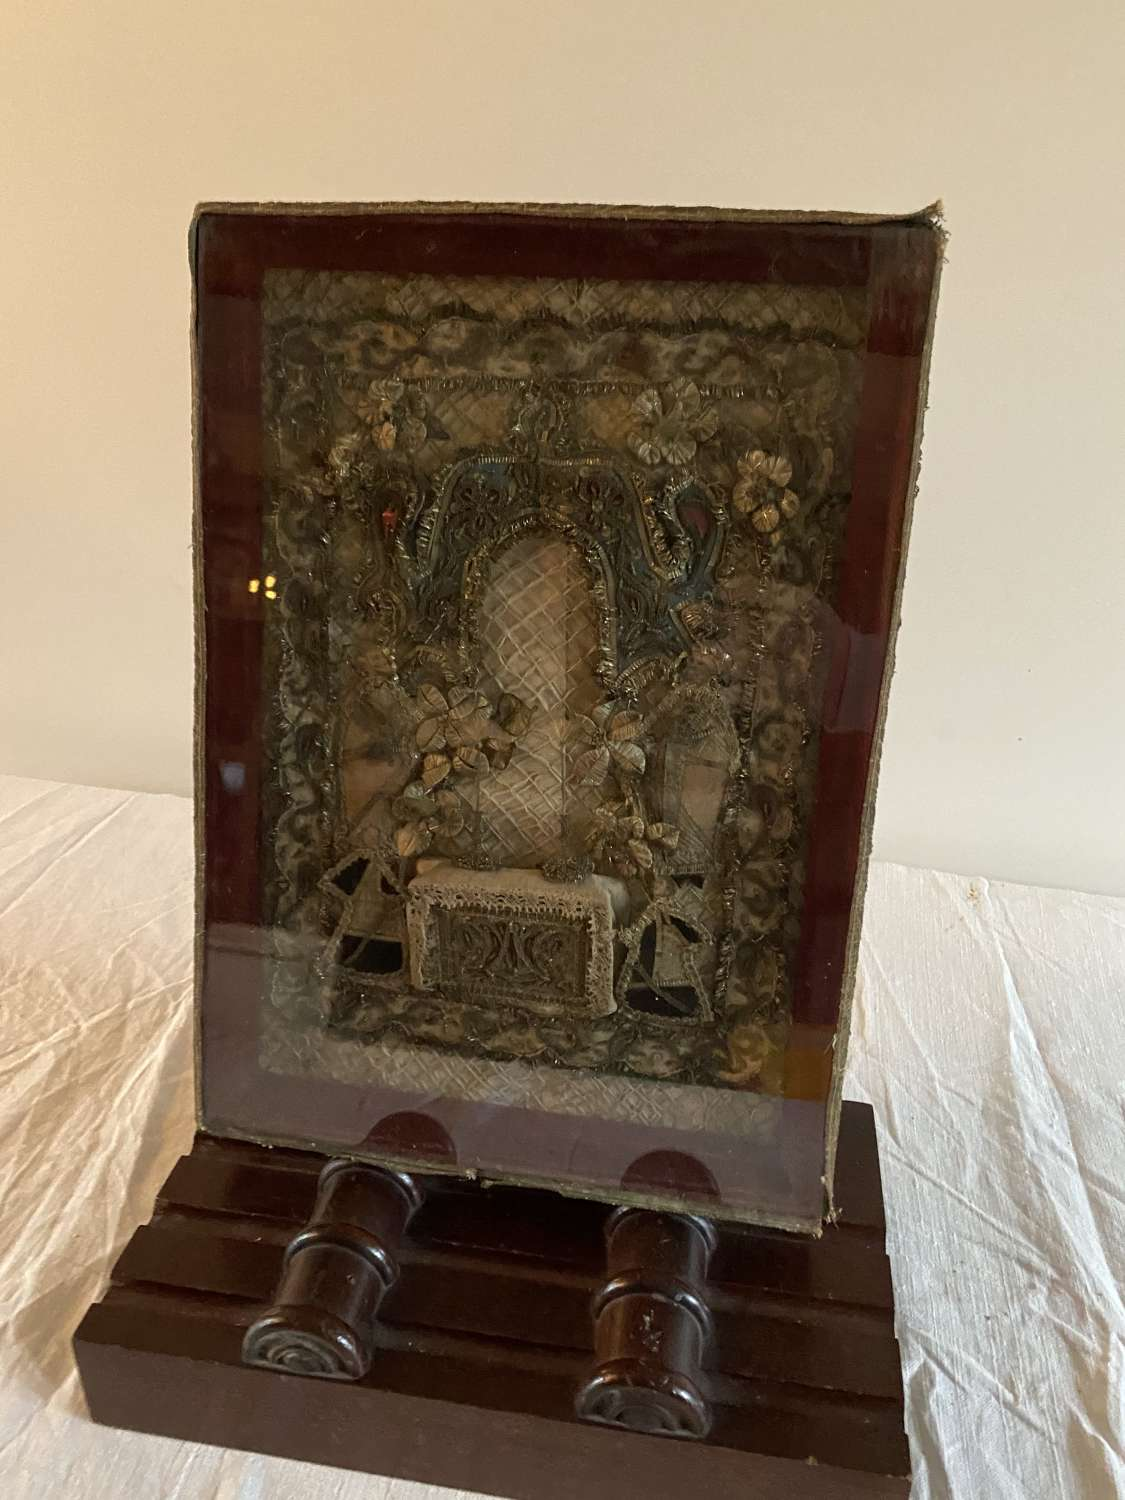 An early 19th century relic of an altar